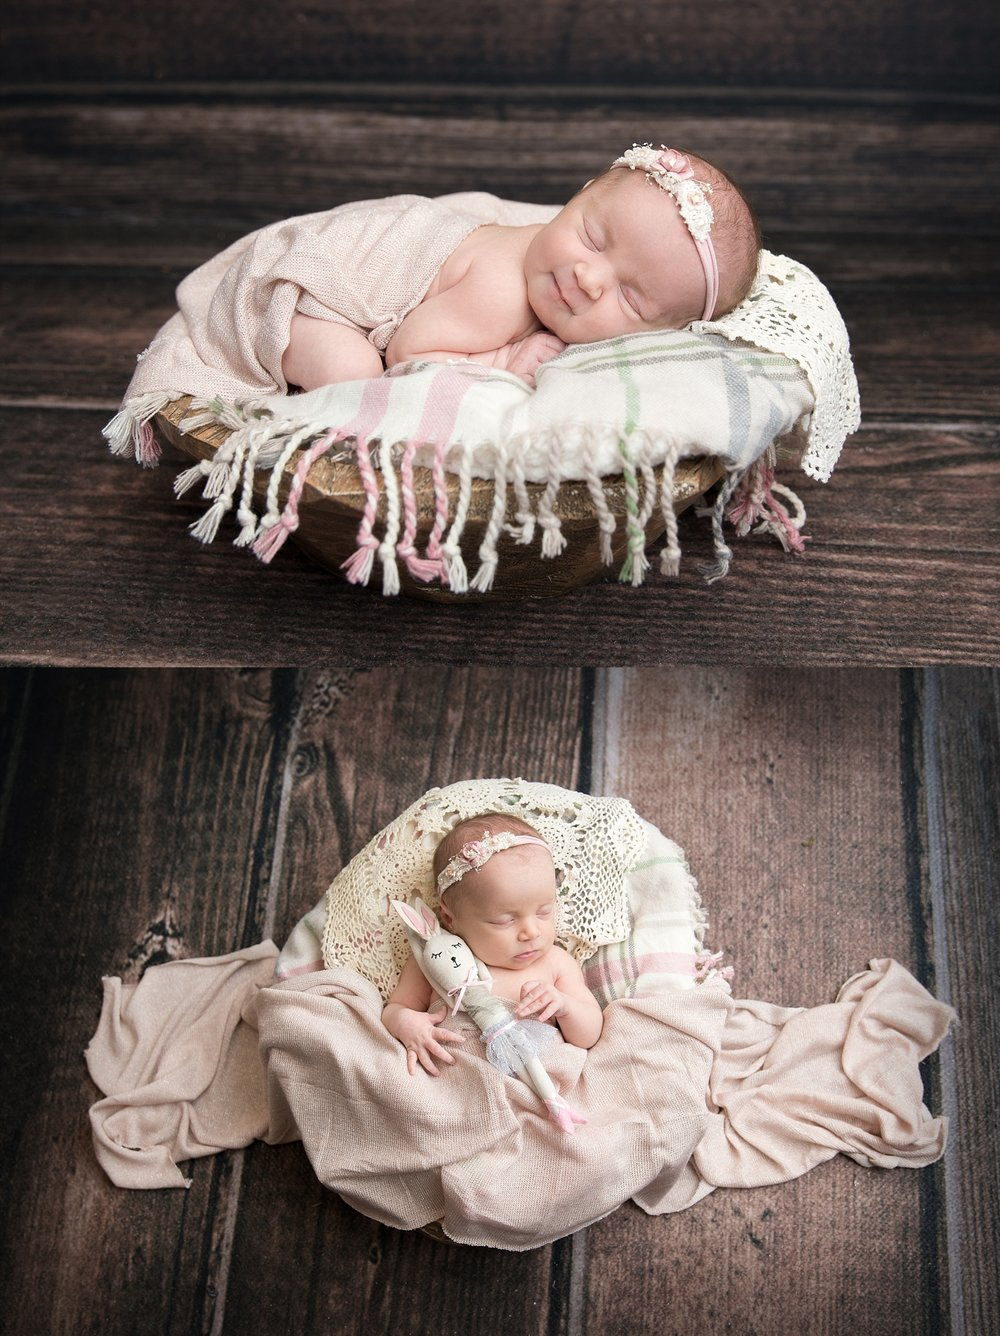 st-louis-newborn-photographer-collage-baby-girl-on-pink-plaid-blanket-with-wood-floor.jpg